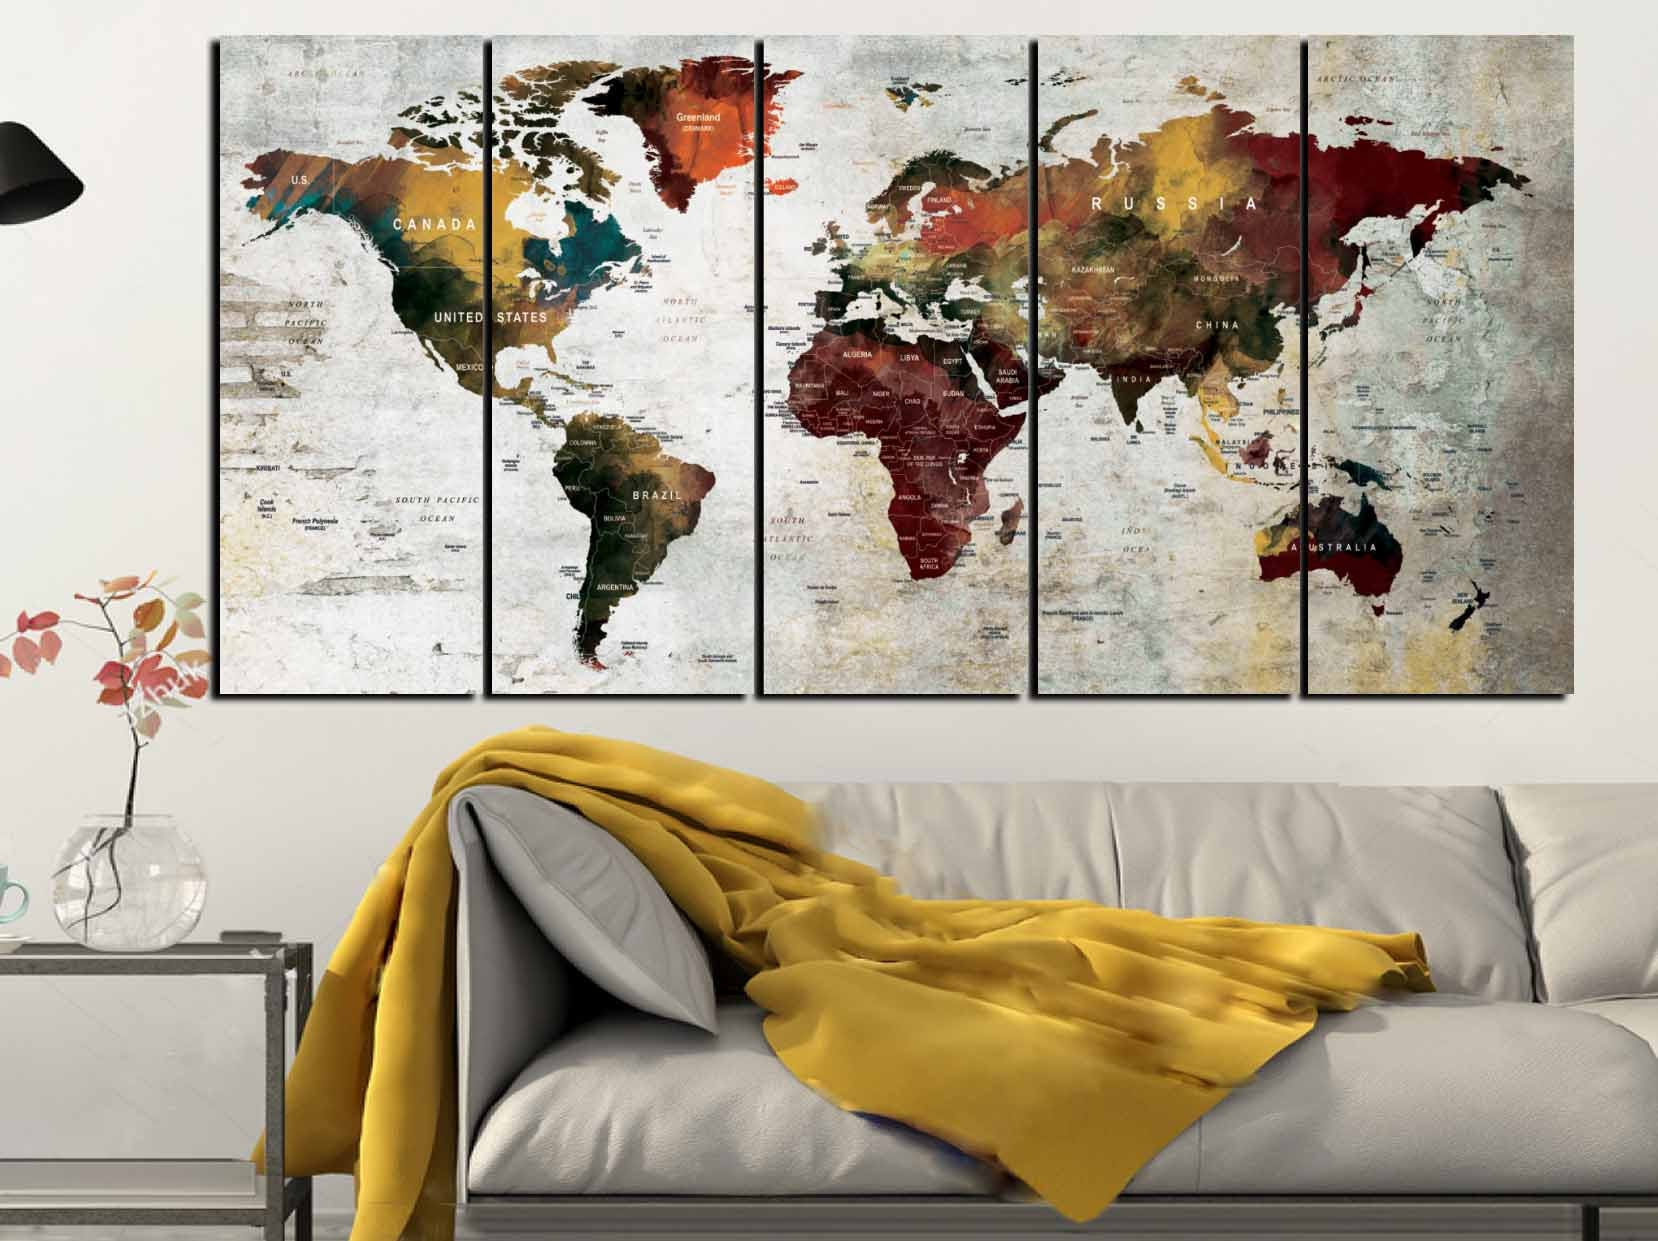 World map artworld map canvaslarge world mapworld map wall art world map artworld map canvaslarge world mapworld map wall artabstract world mapabstract map artwatercolor world mapwatercolor map gumiabroncs Images